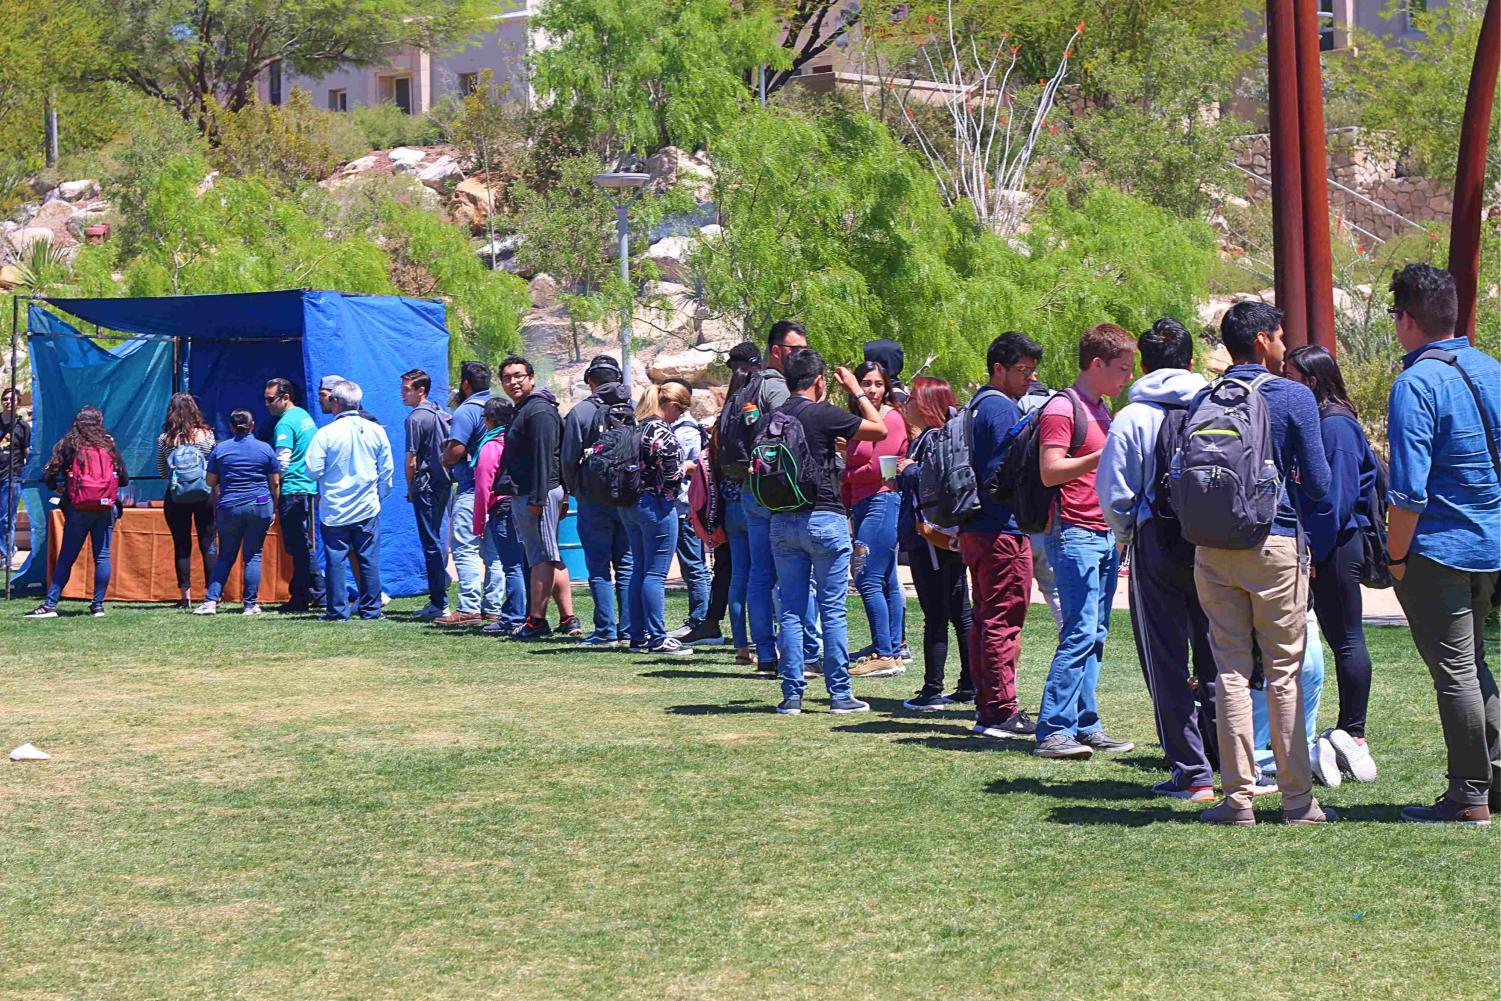 Free+food+at+the+celebration+of+UTEP%27s%C2%A0+Student+Government+Association+%28SGA%29+100+years+of+service+at+Centennial+Plaza.